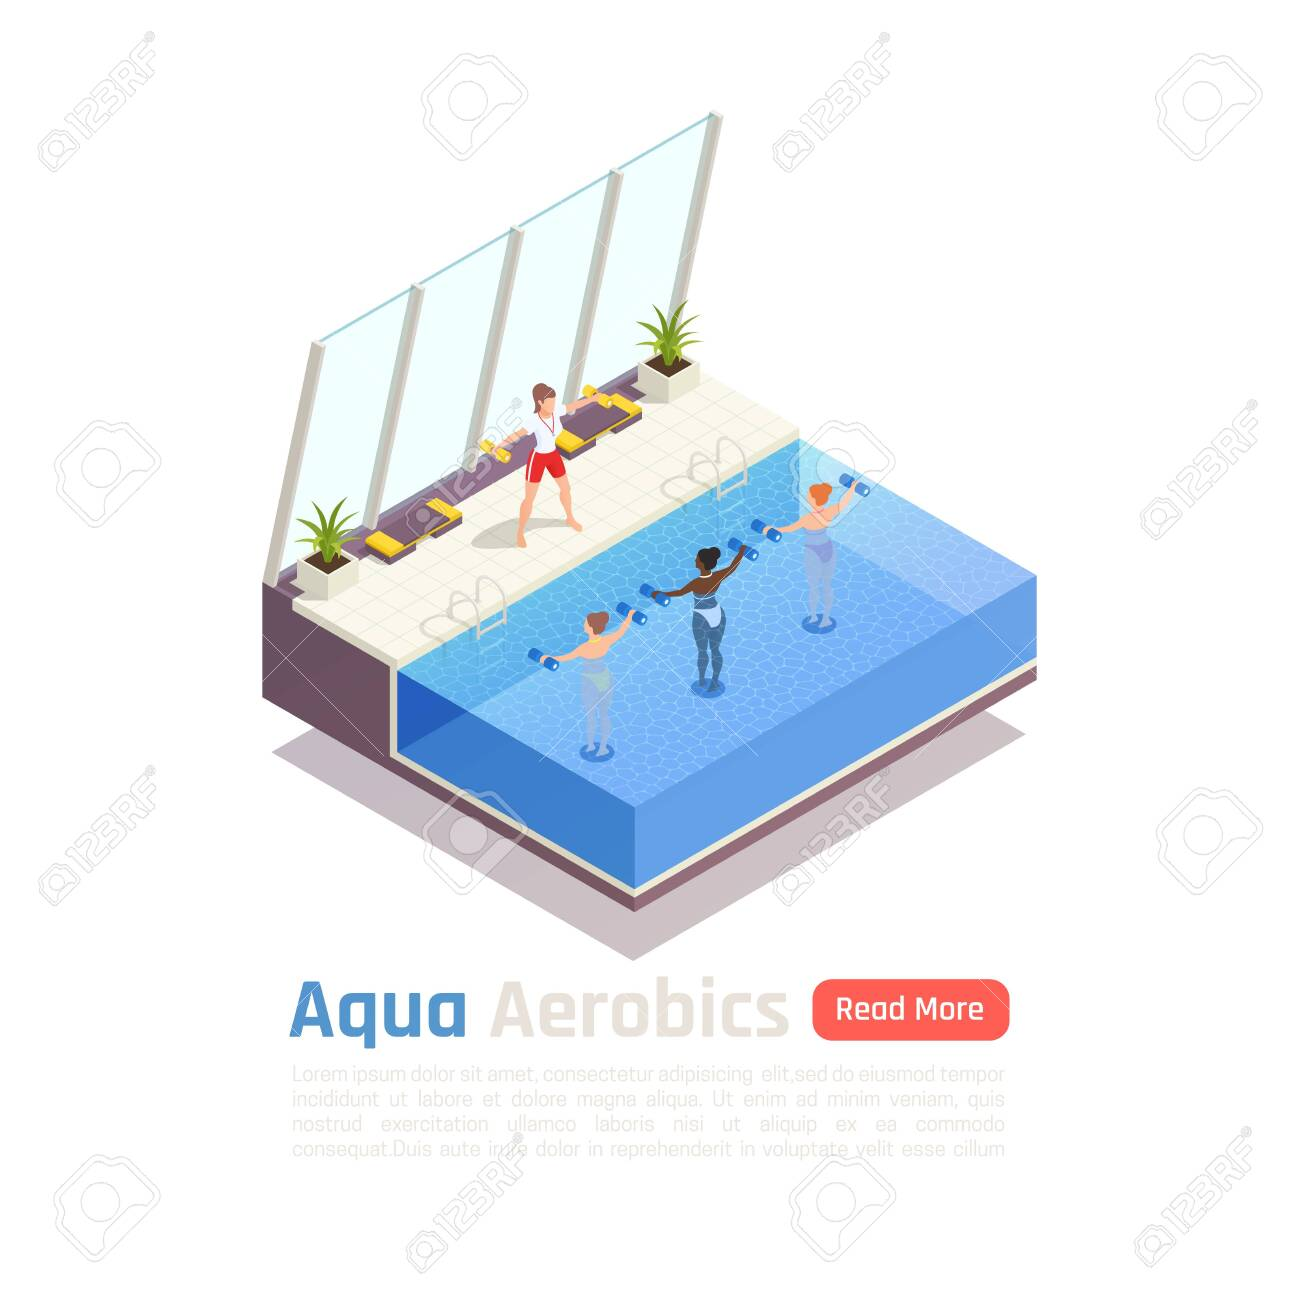 Water aerobic calories burning training isometric composition with aqua dumbbells exercise in modern swimming pool vector illustration - 128161202